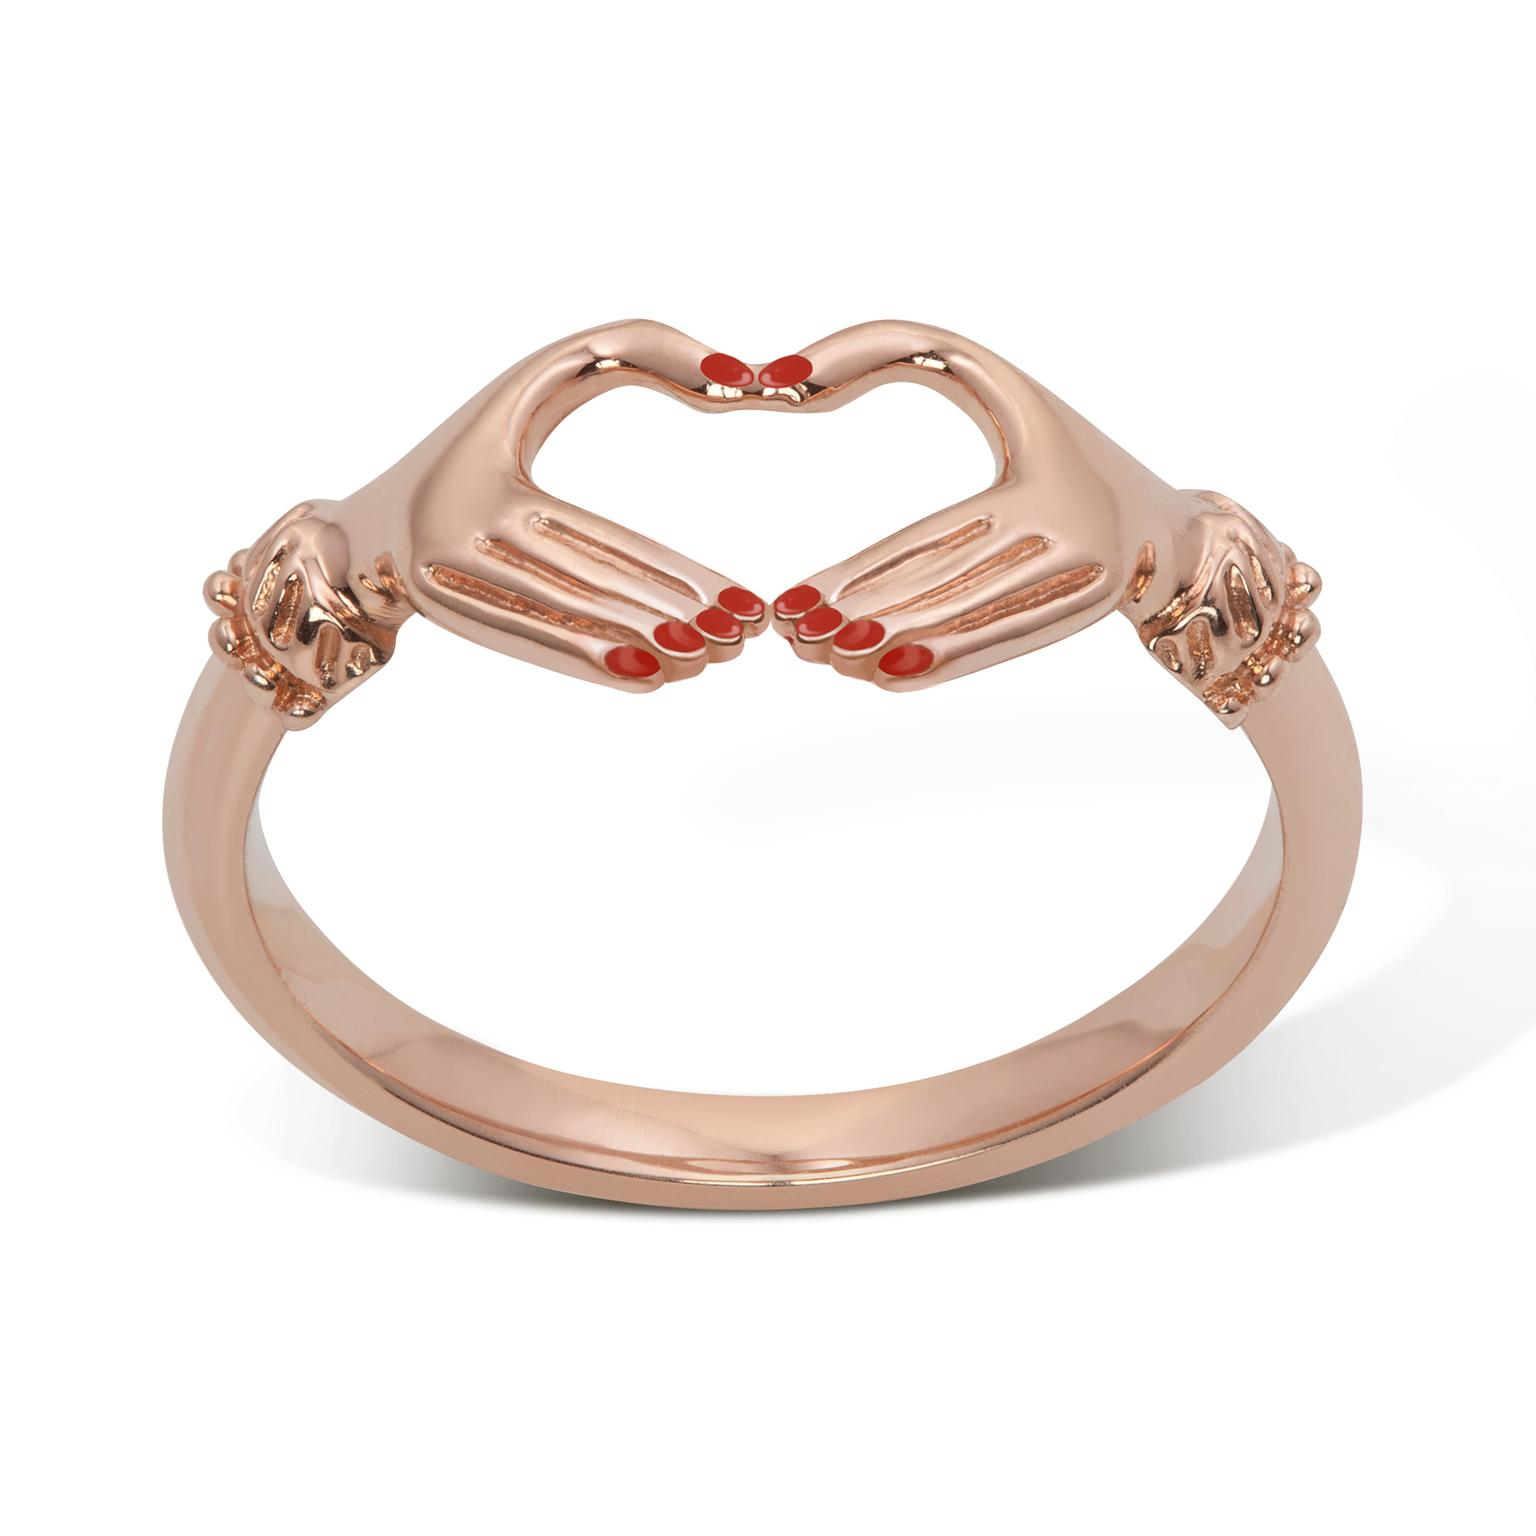 Gillian Steinhardt Lover ring